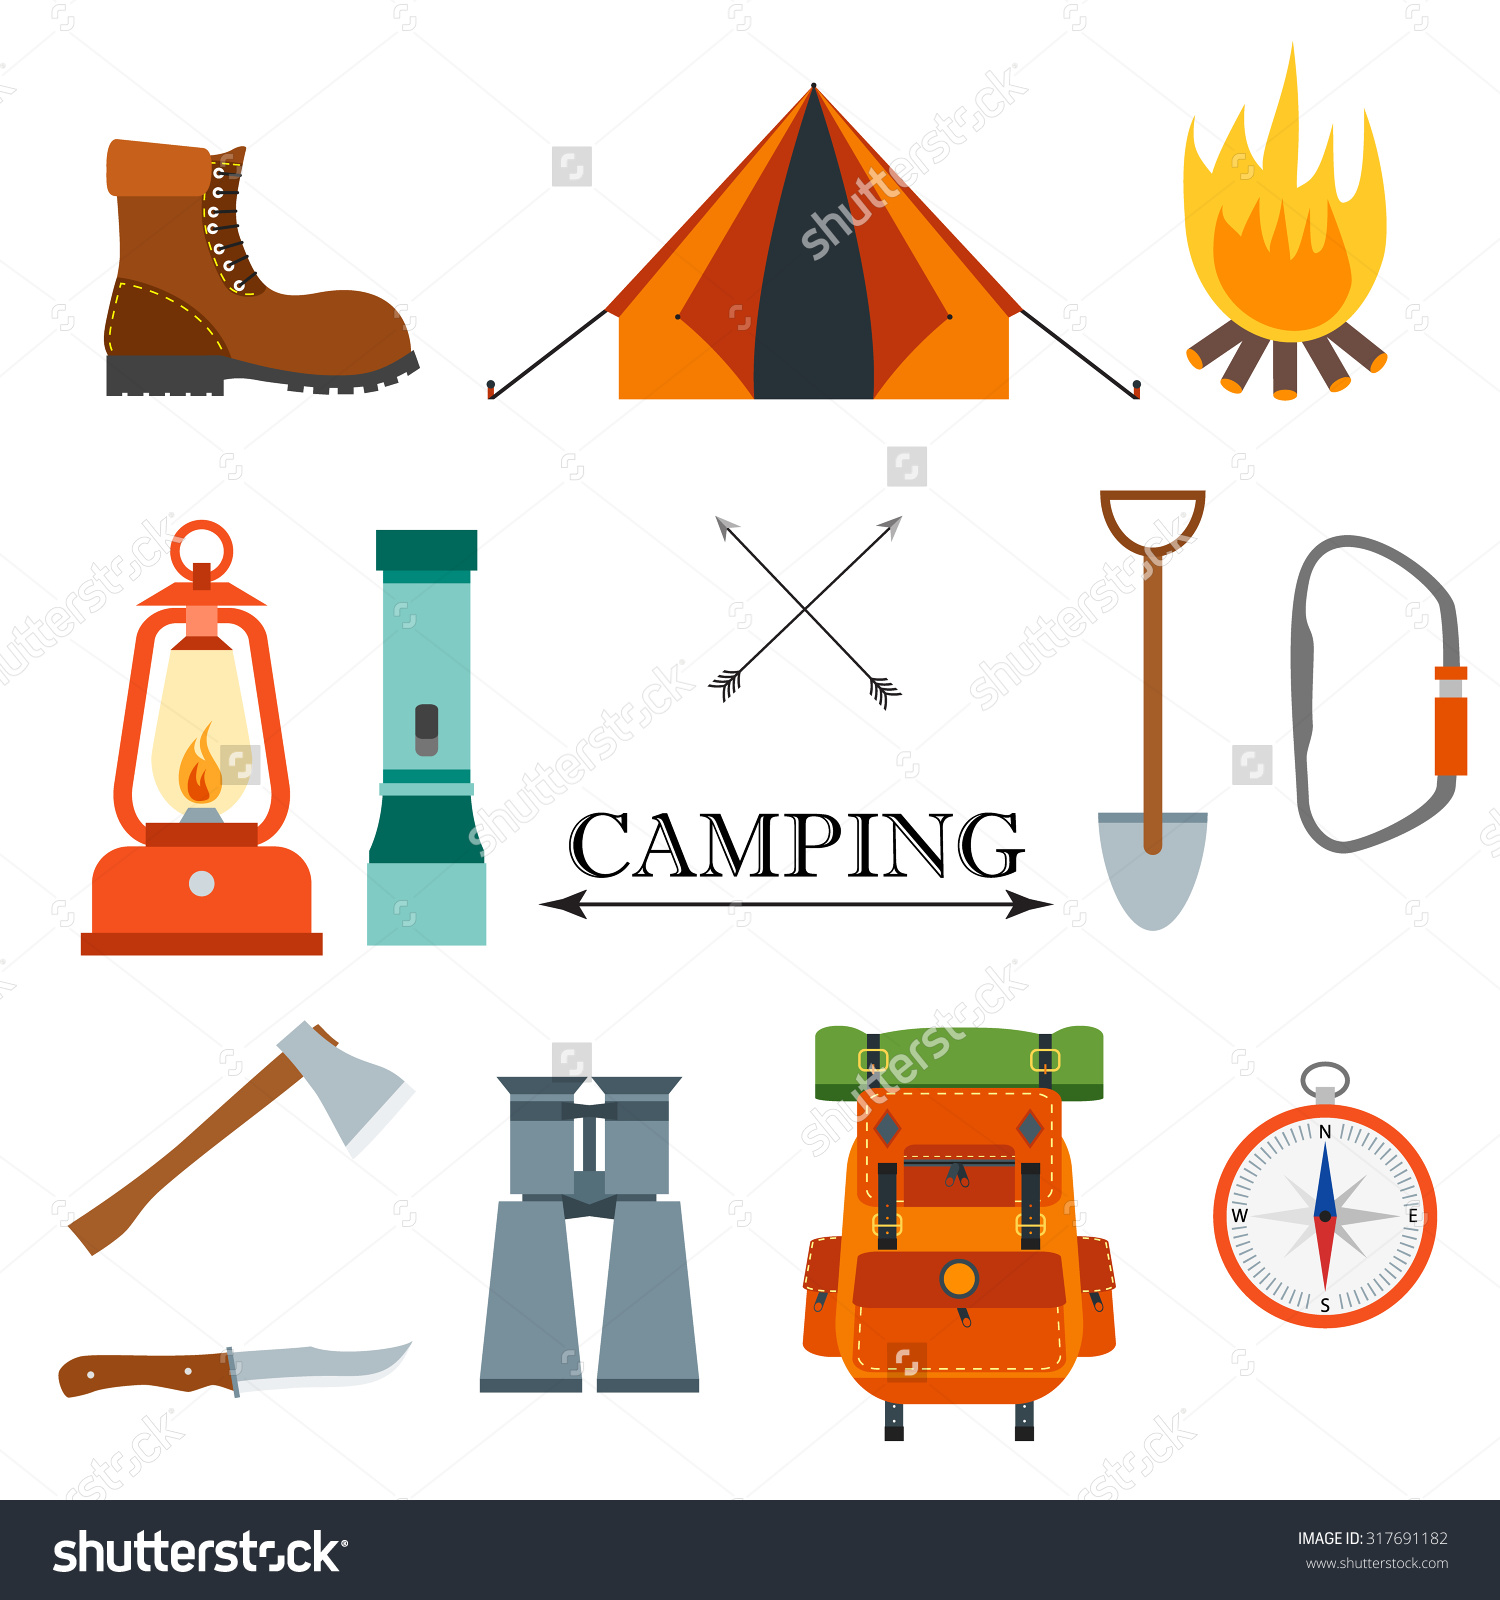 Campfire clipart vector. Compass explore pictures